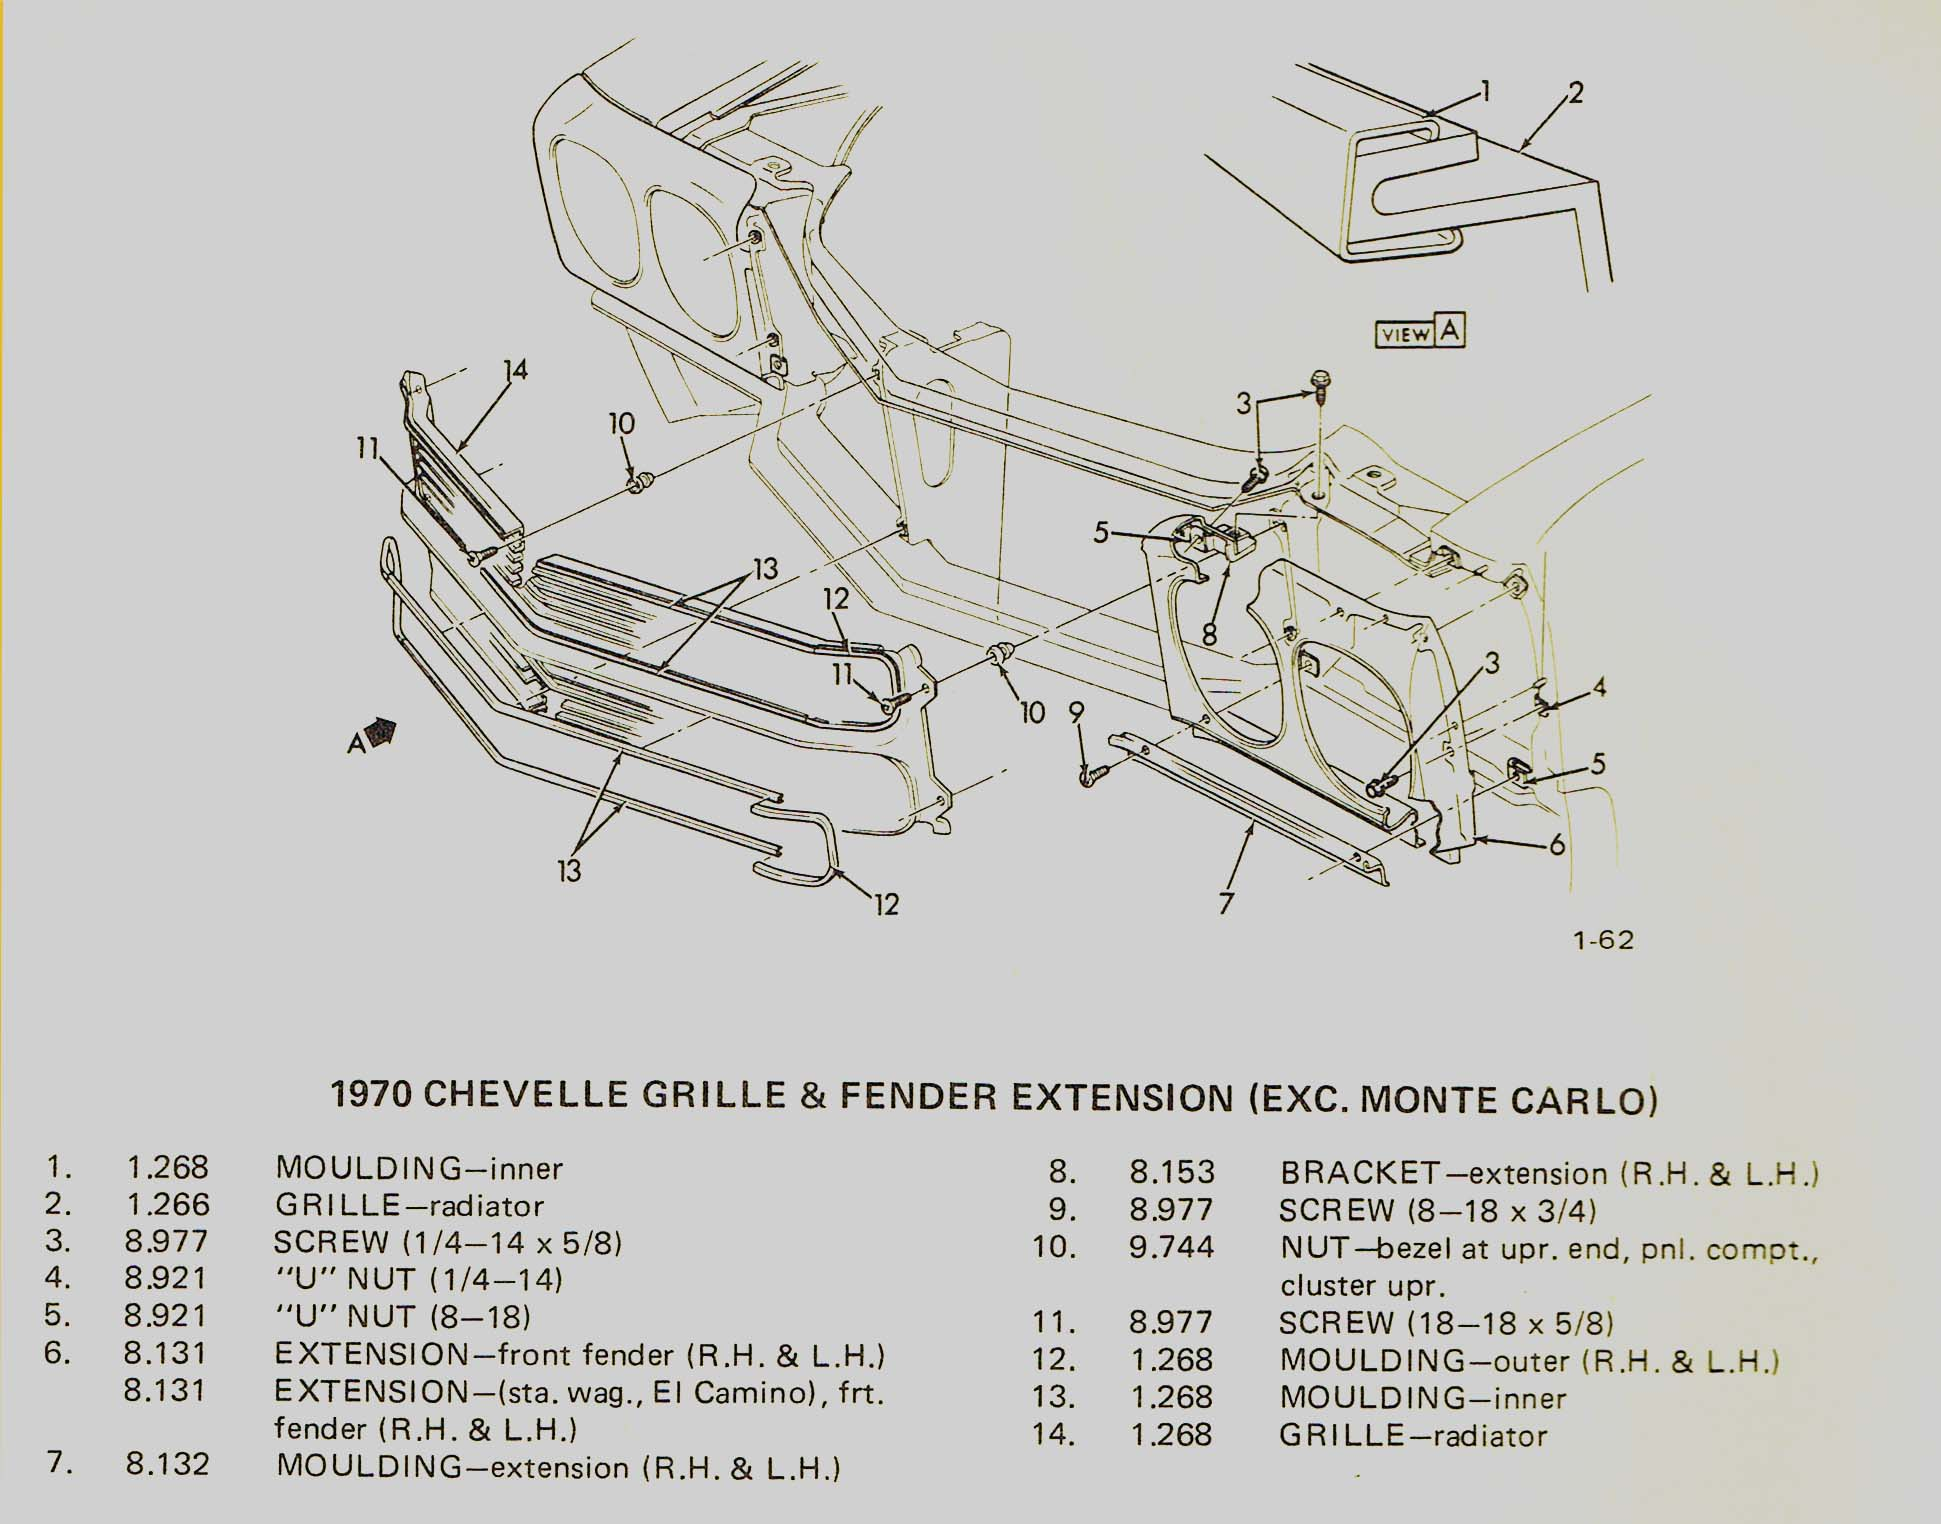 wiring diagram for 1969 chevy truck with 1970 Monte Carlo Radiator on Chevy Chevelle Wiring Diagram moreover 1970 Monte Carlo Radiator further Windshield Wiper Motor Diagram as well New Ford Grand Torino Cobra Jet likewise 1968 Chevrolet Camaro Engine  partment.